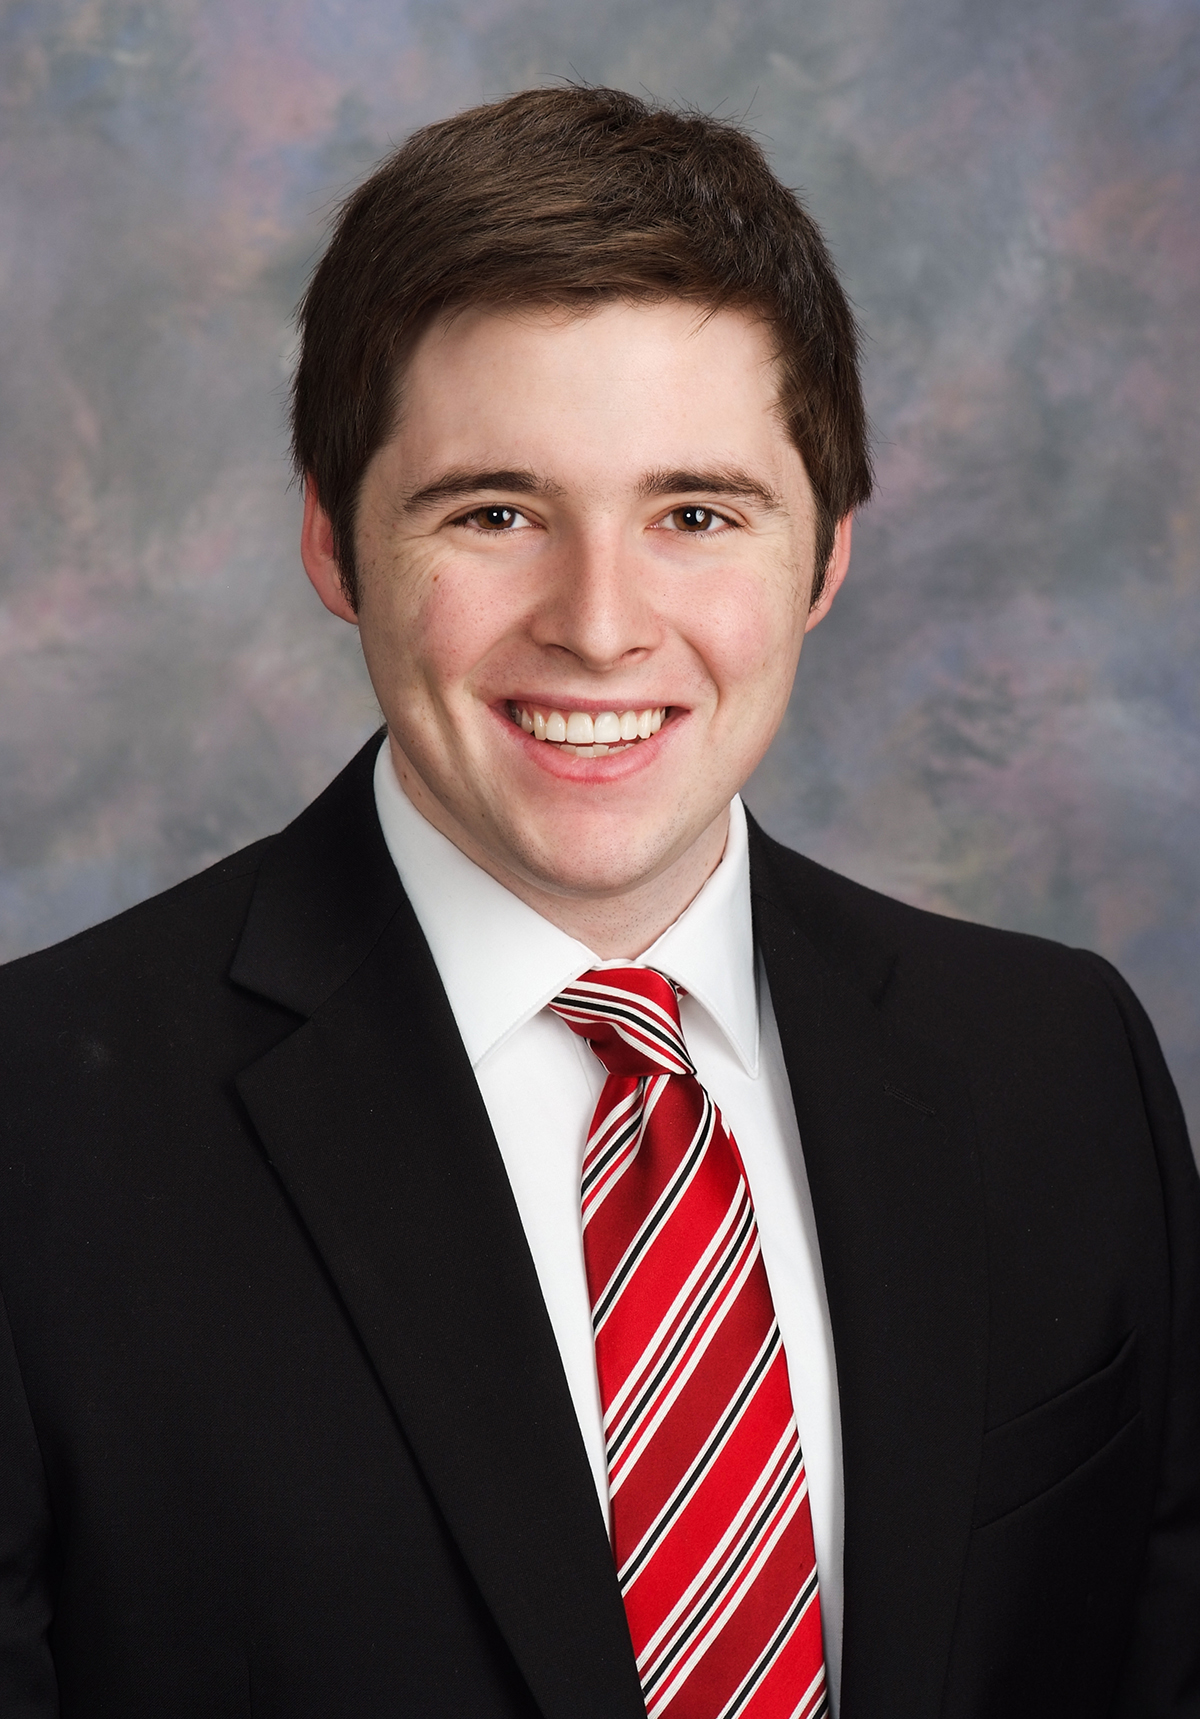 Caleb Markey Macomb IL Graduates With A Bachelors Degree In Finance And Accountancy Double Major The Highest Academic Distinction